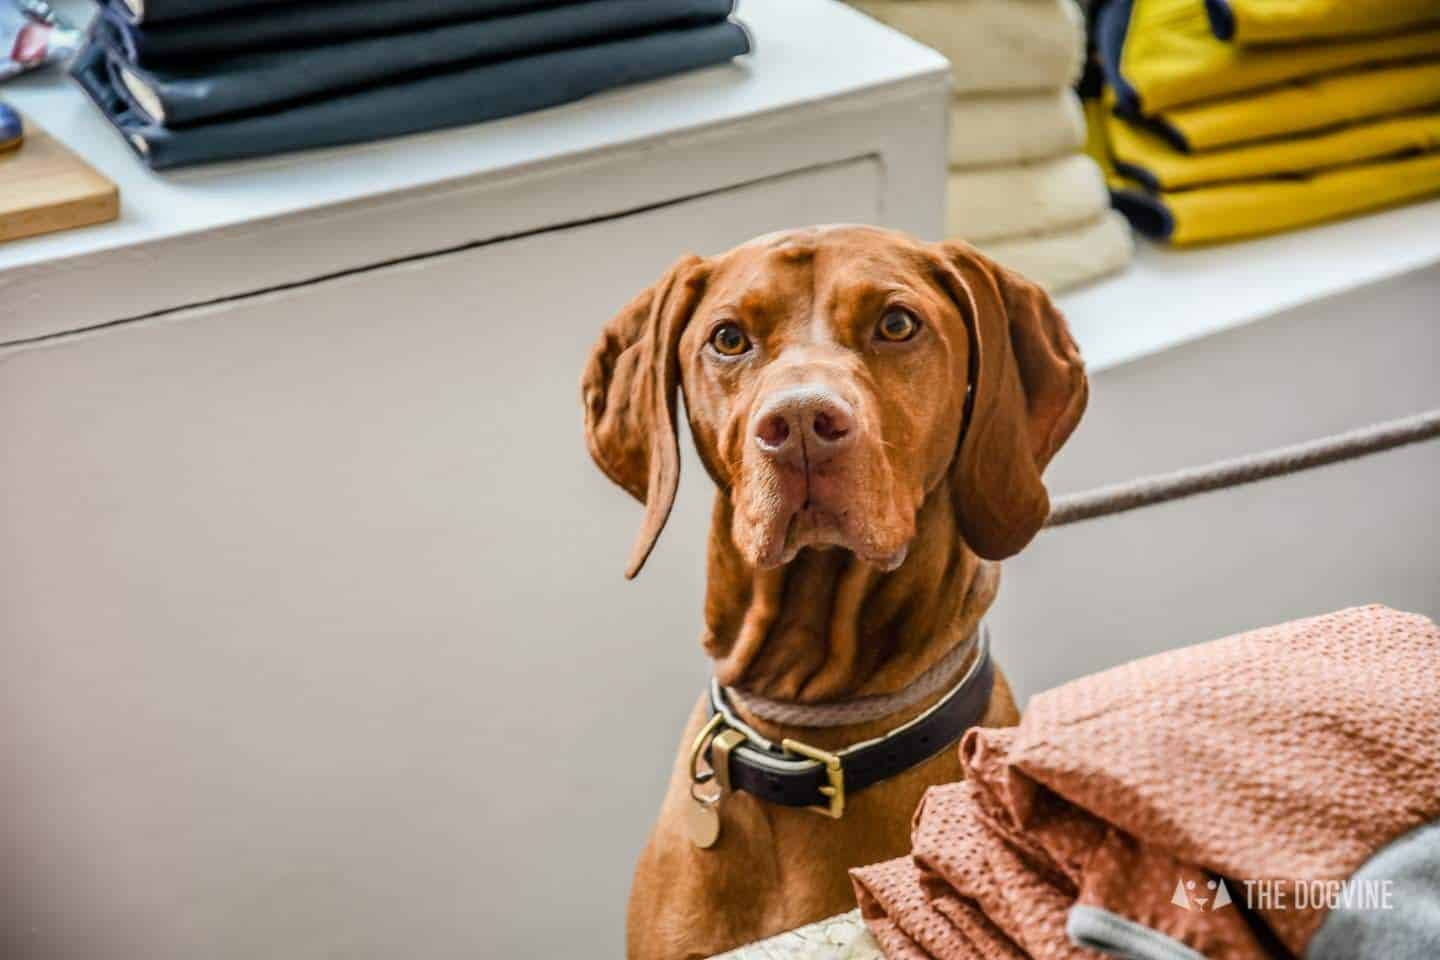 Dogs Day Out With Fetch & Follow On Tour In Dog-Friendly Whitstable 34